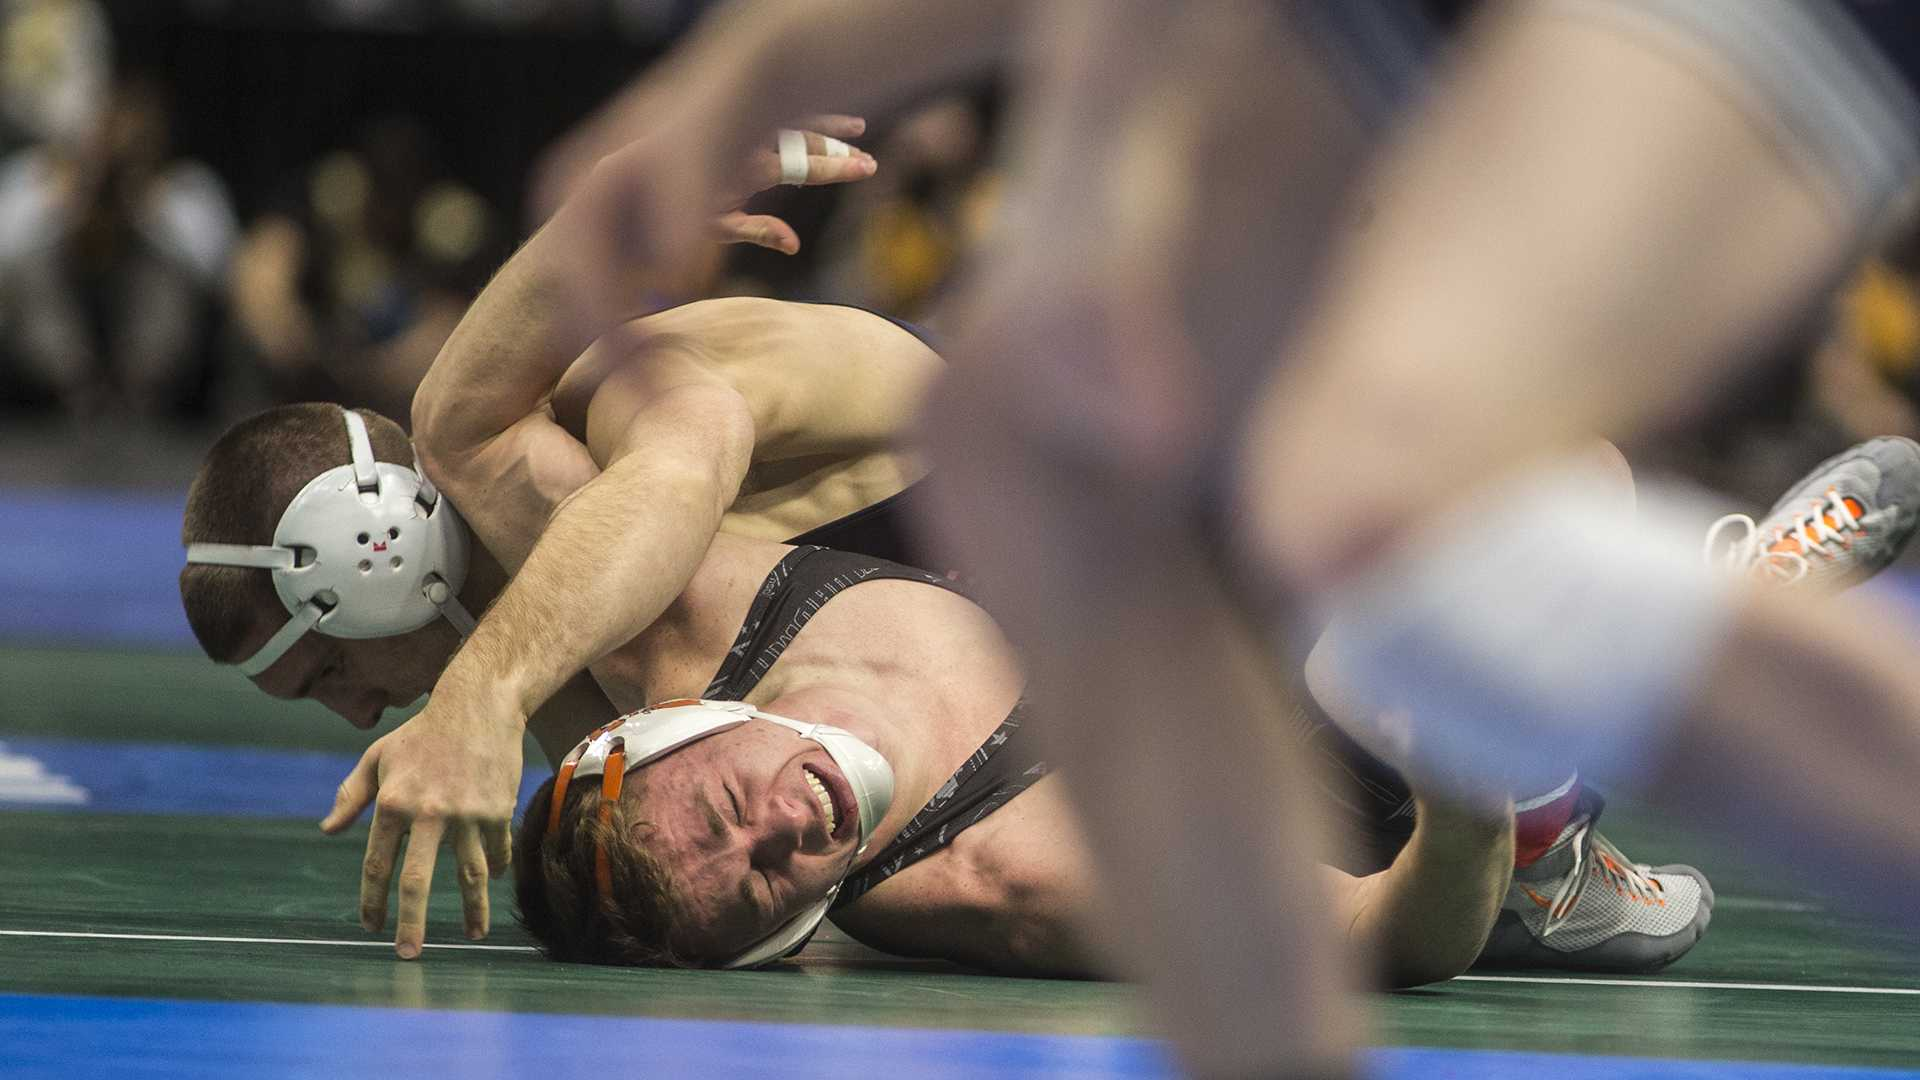 Penn State's Zain Retherford pins Oklahoma State's Boo Lewallen during Session 3 of the NCAAs Wrestling Championships at Quicken Loans Arena in Cleveland, OH on Thursday, March 16, 2018. Retherford advanced to the semifinals where he'll face off against UNC's Troy Heilmann (Ben Allan Smith/The Daily Iowan)